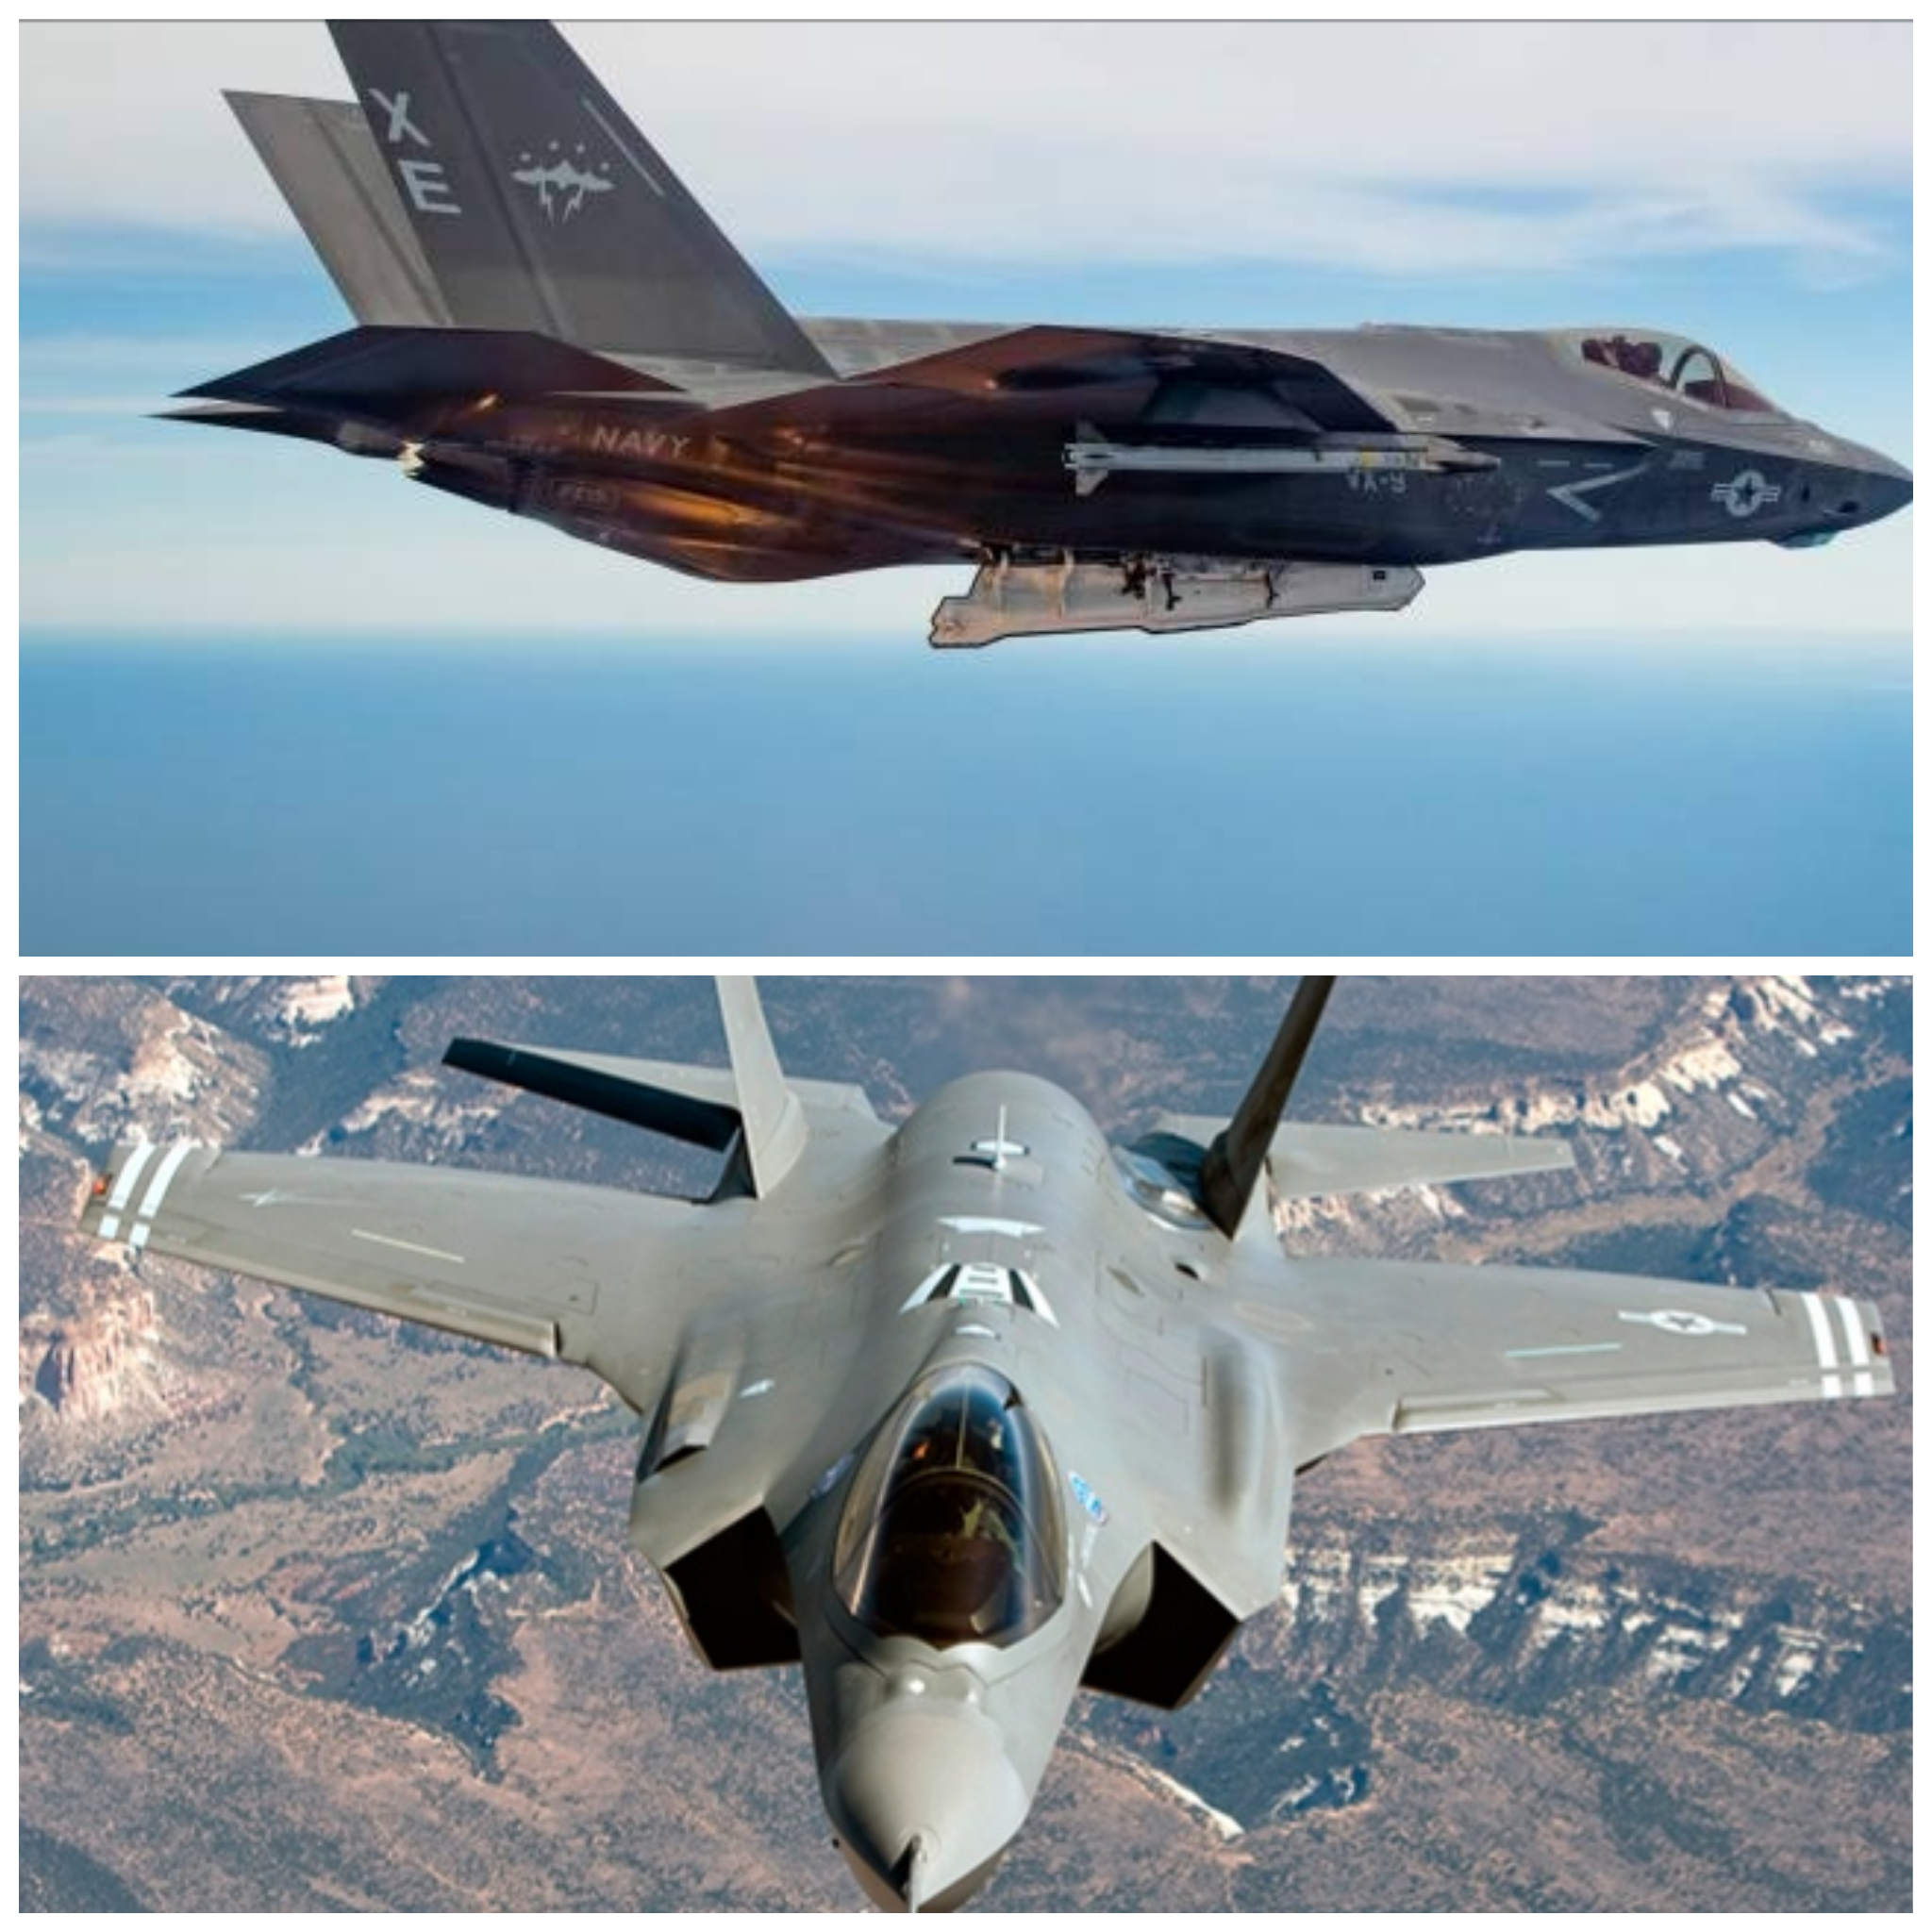 Israeli minister says Qatar could get F-35s 'sooner or later'